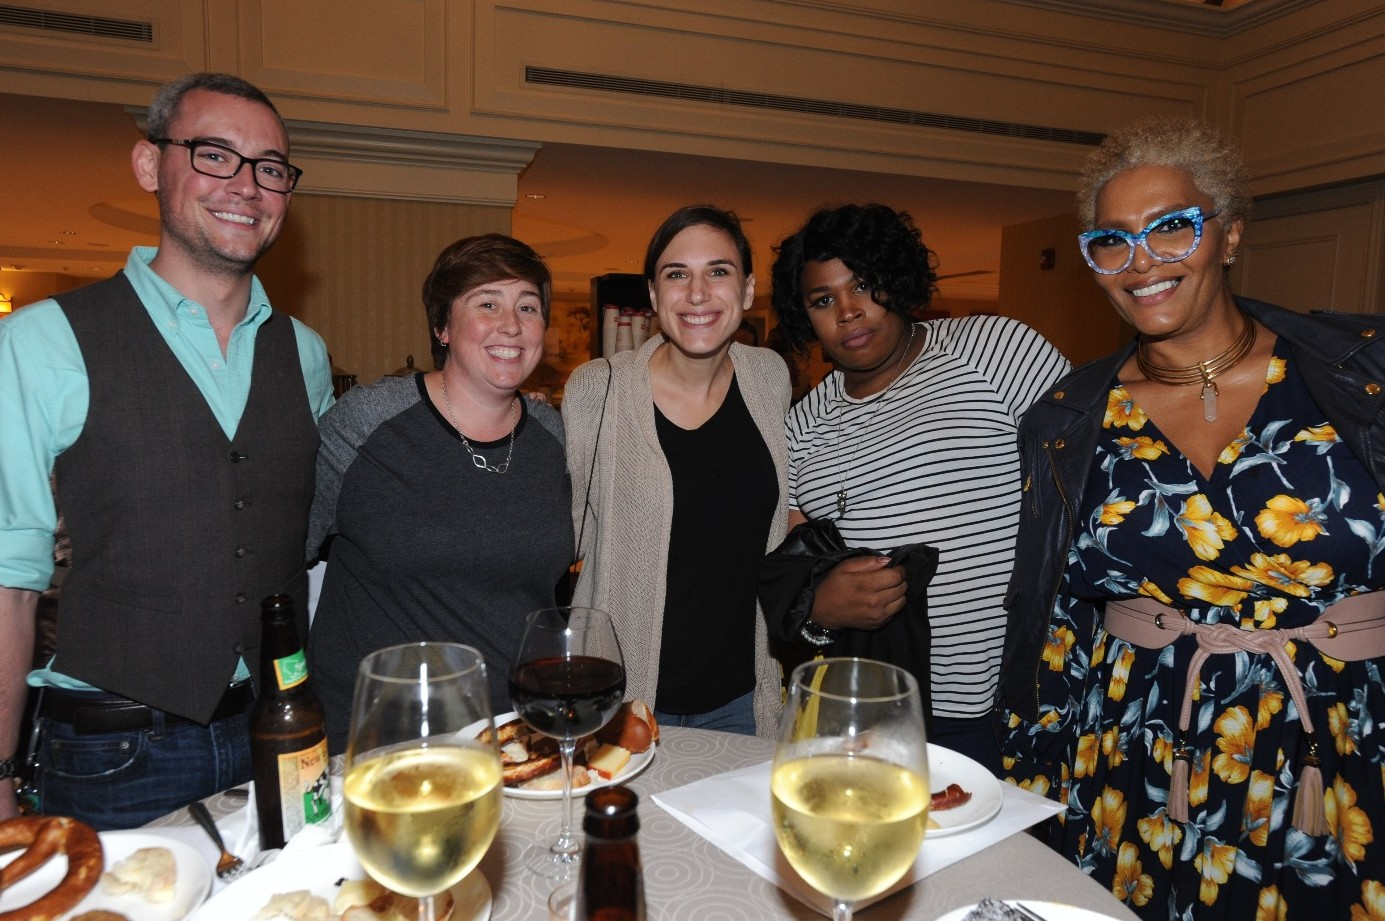 Group of 5 people standing around a table. Their arms are around each other, and there are wine glasses, beer bottles, and plates of food on the table.